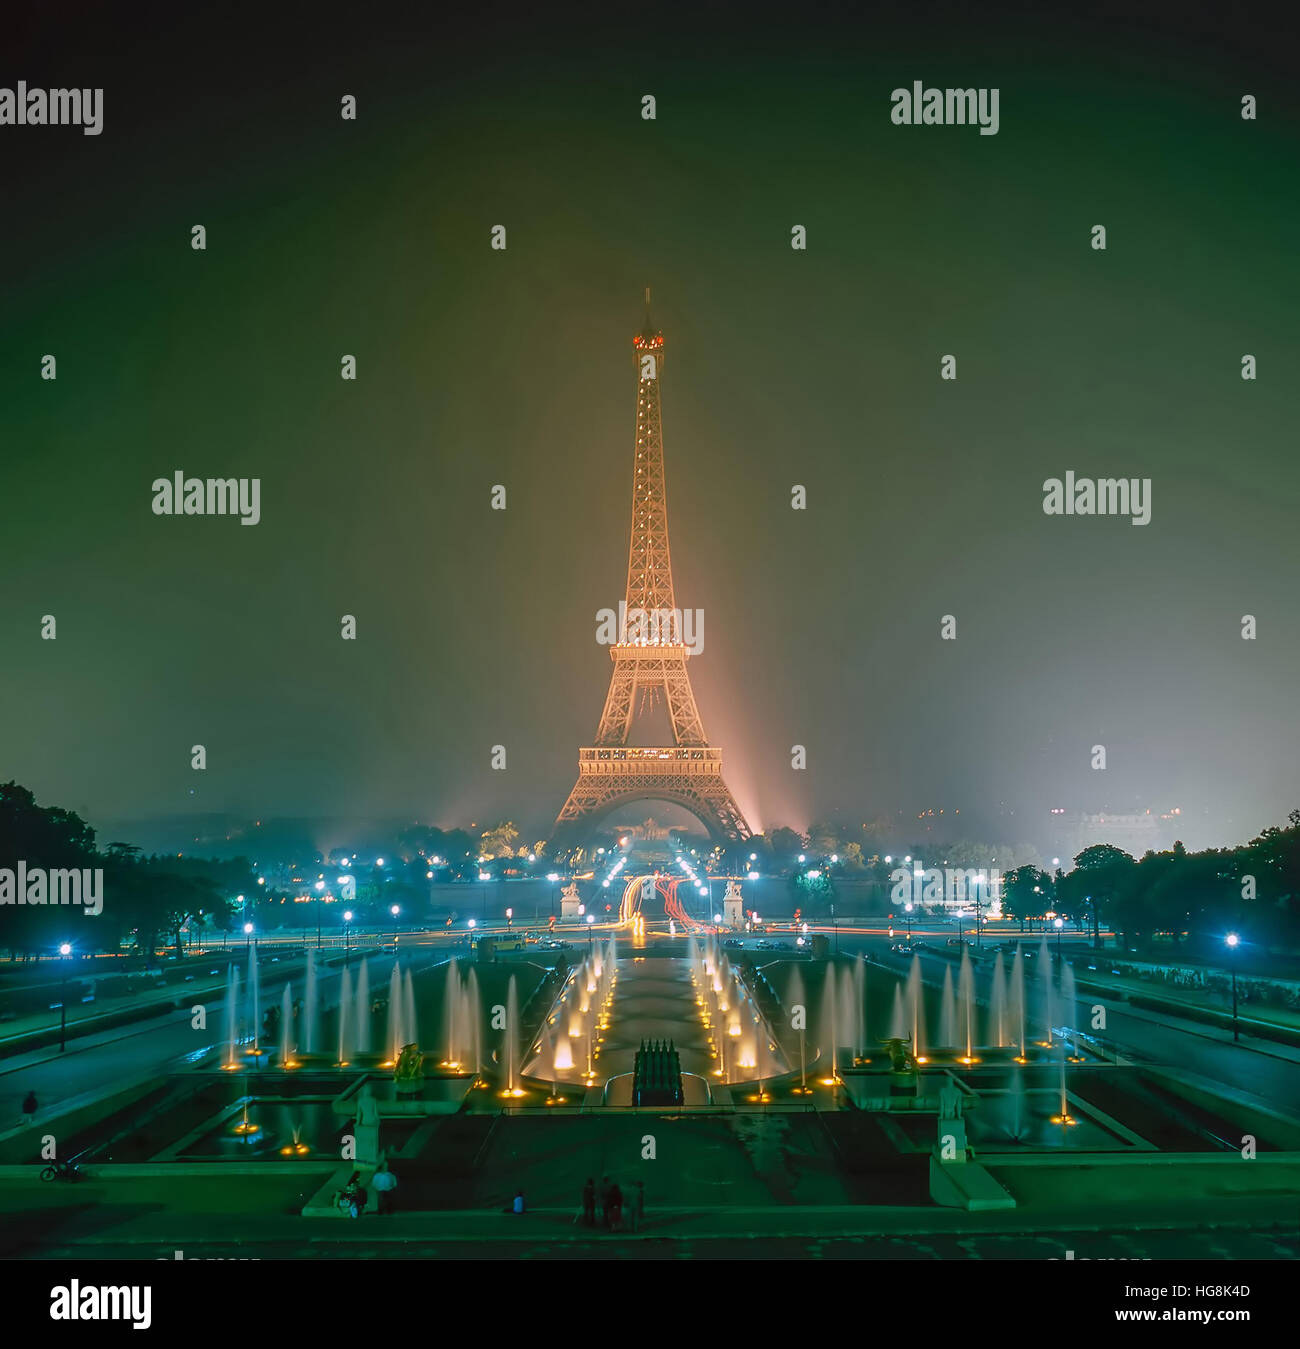 Eiffel Tower at night in Paris, France - Stock Image